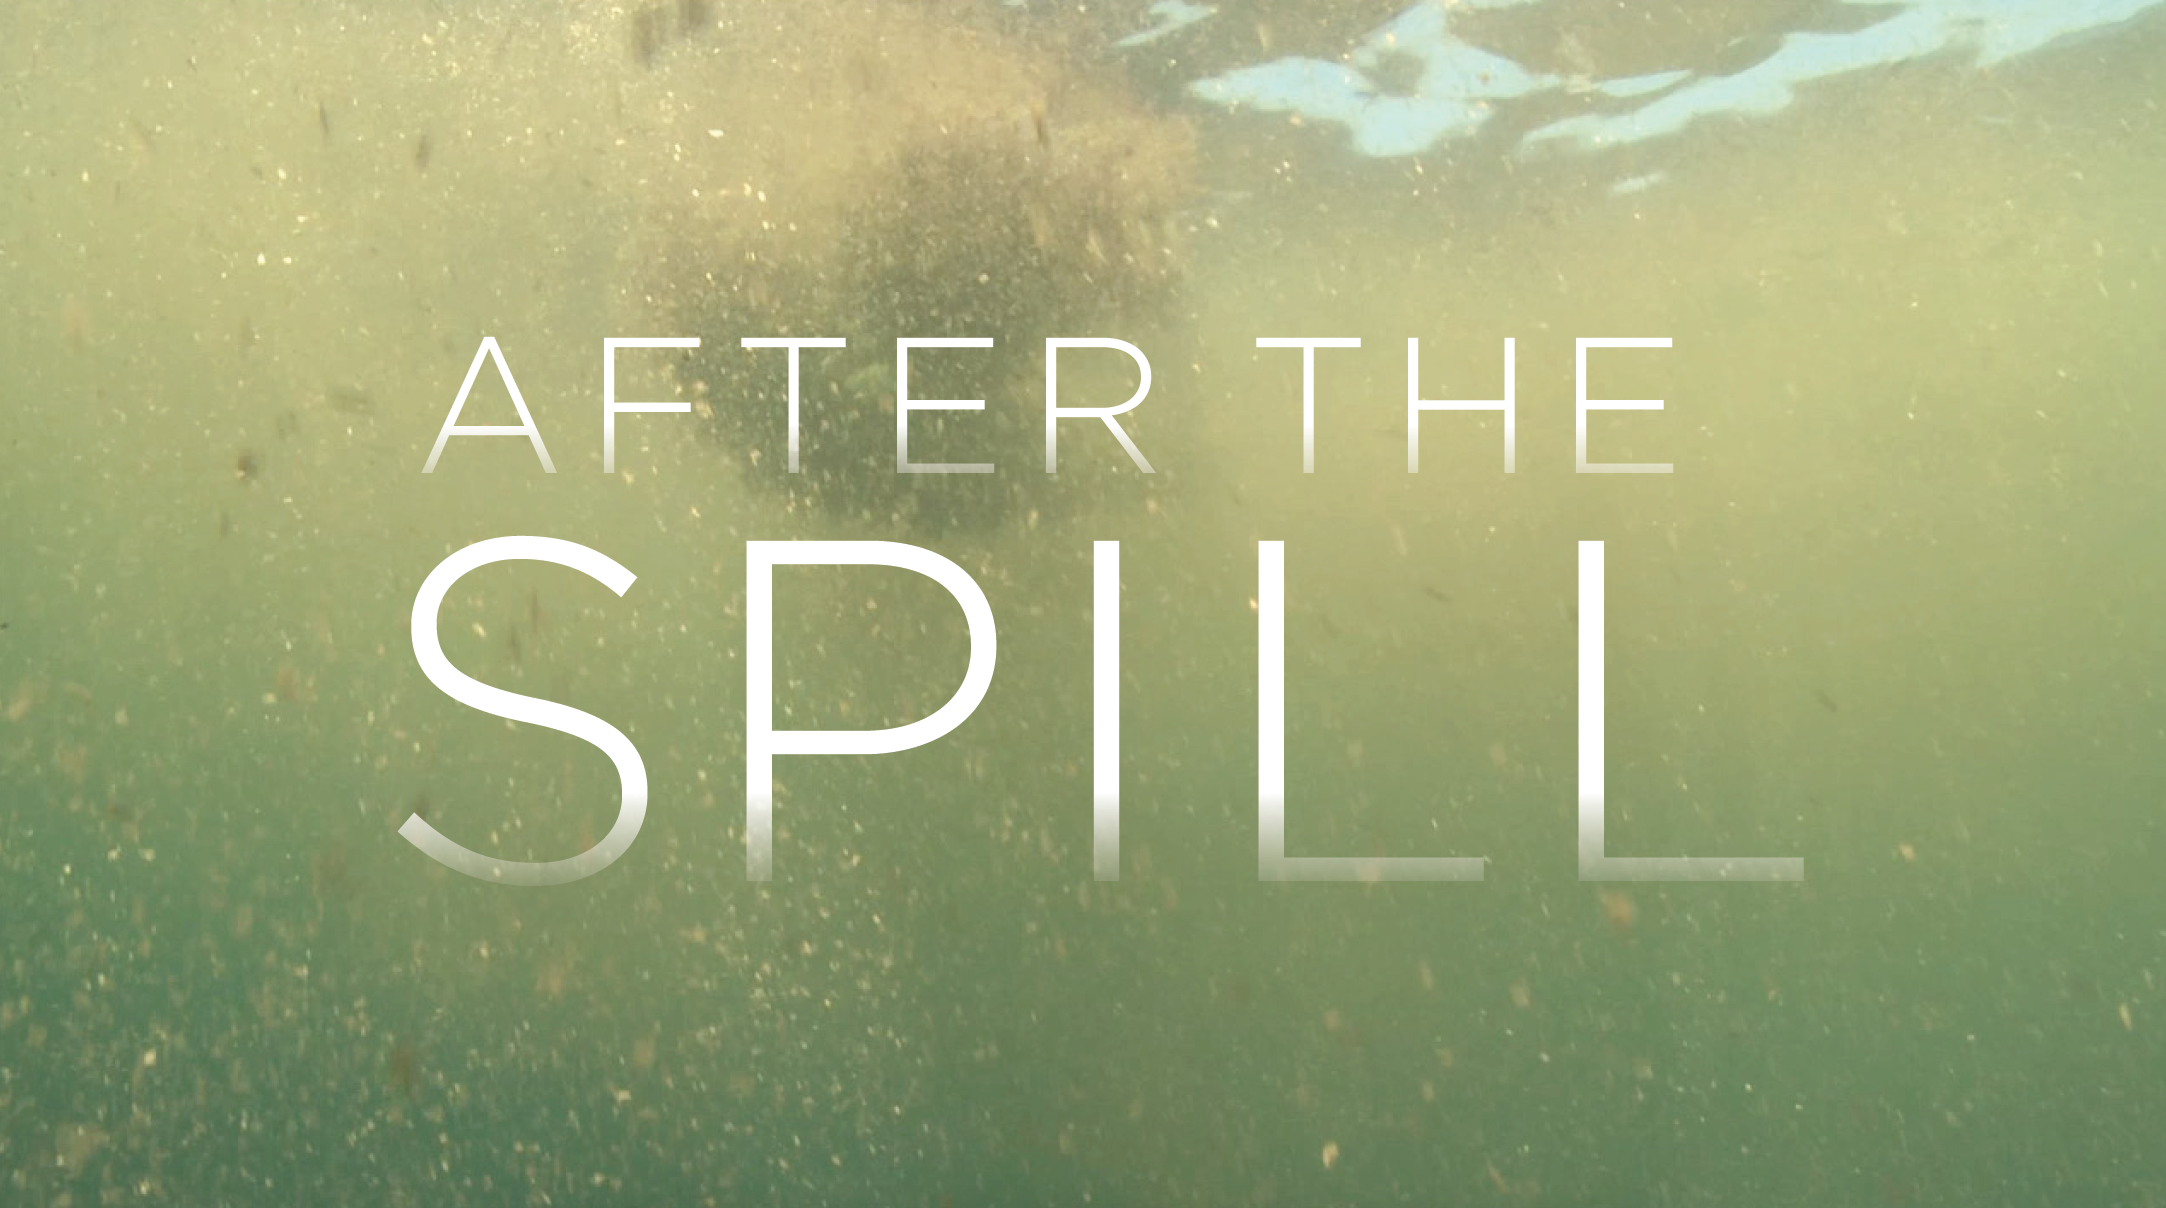 after the spill title card design carla rozman jon bowermaster oceans 8 films